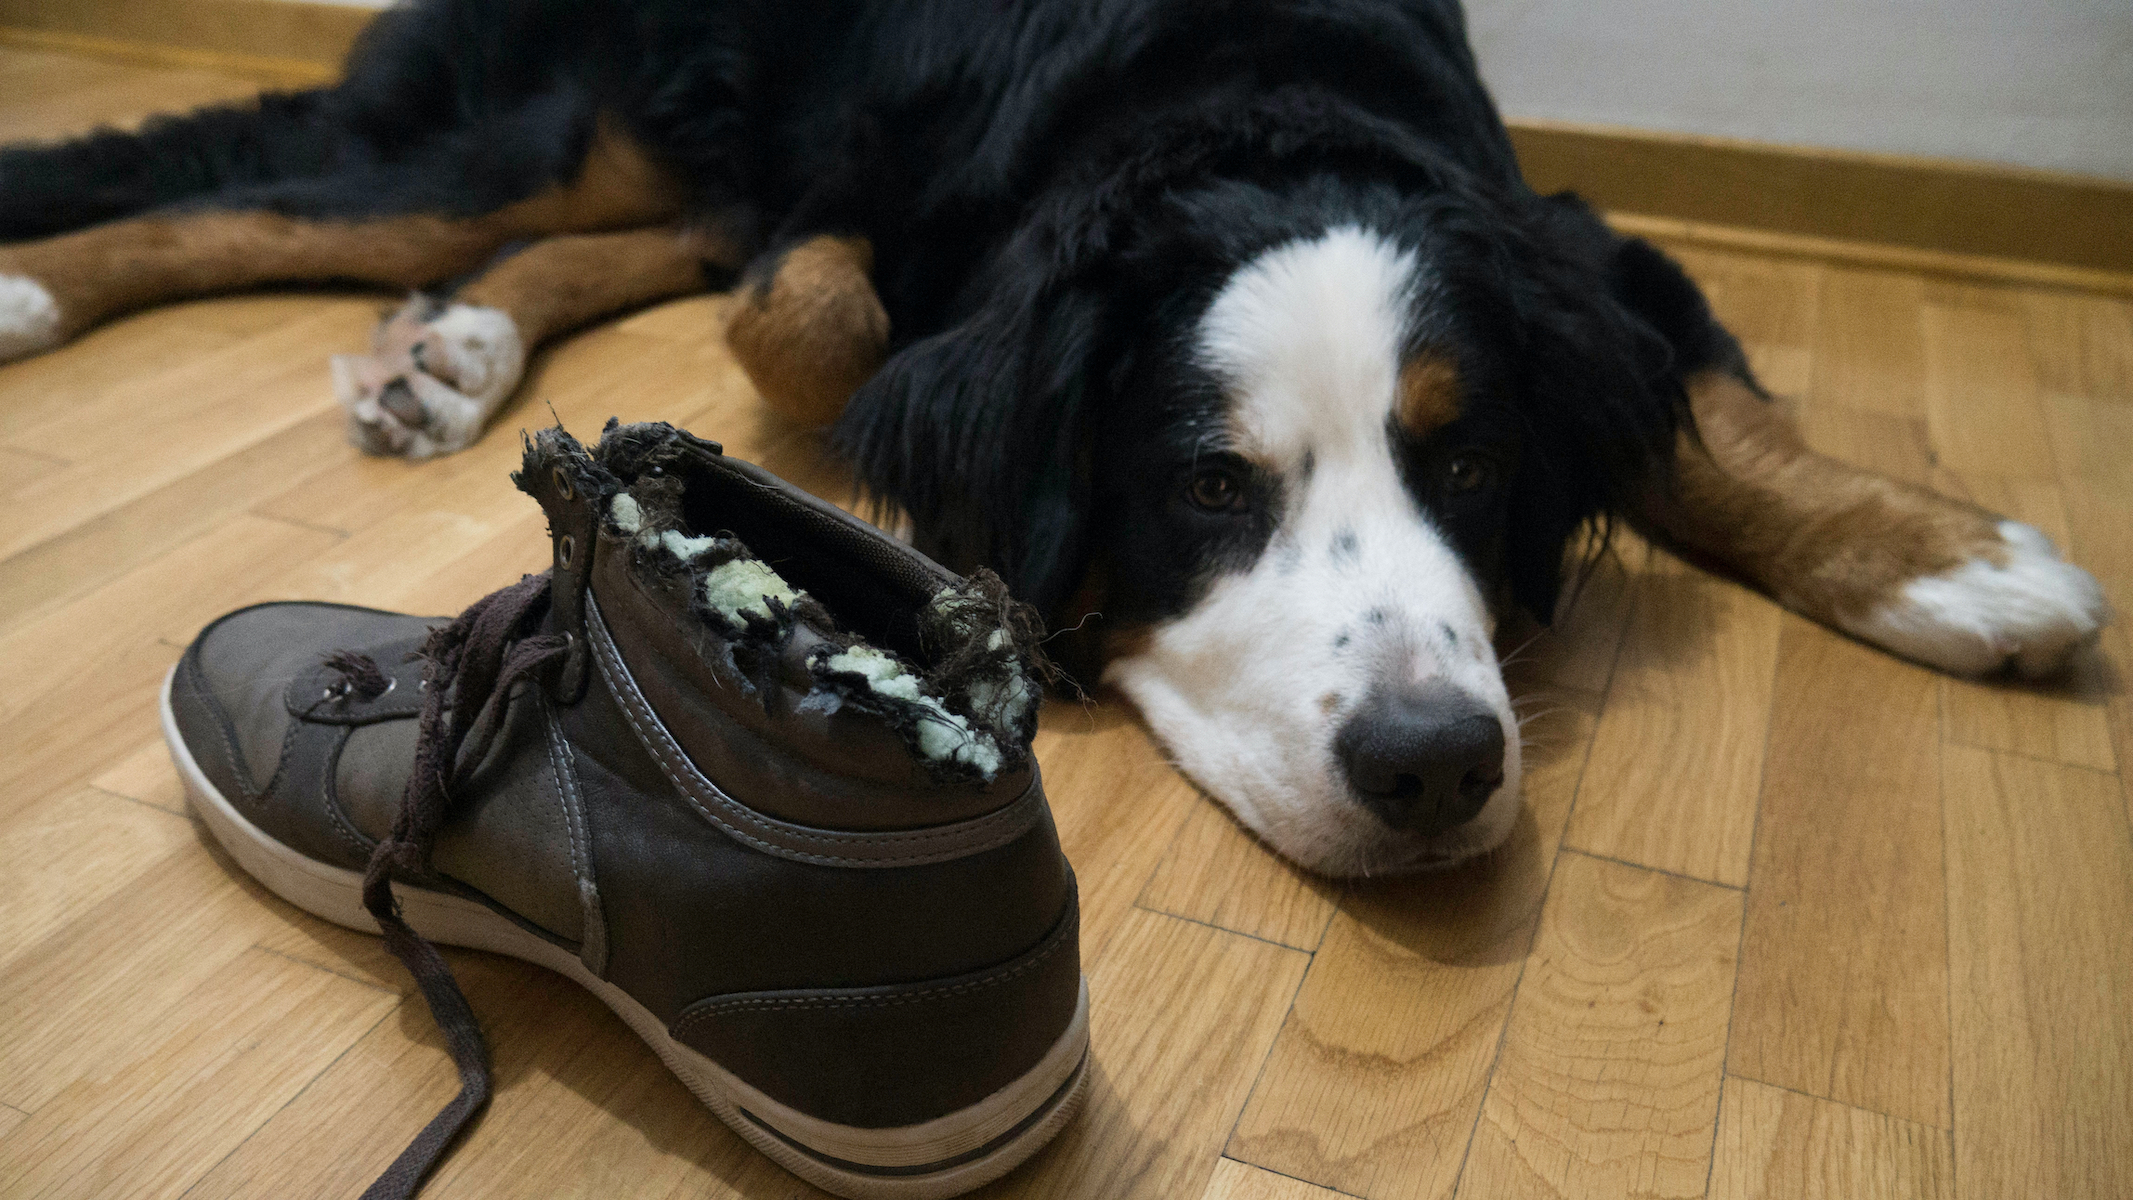 Canva - Bernard mountain dog lying next to chewed shoe